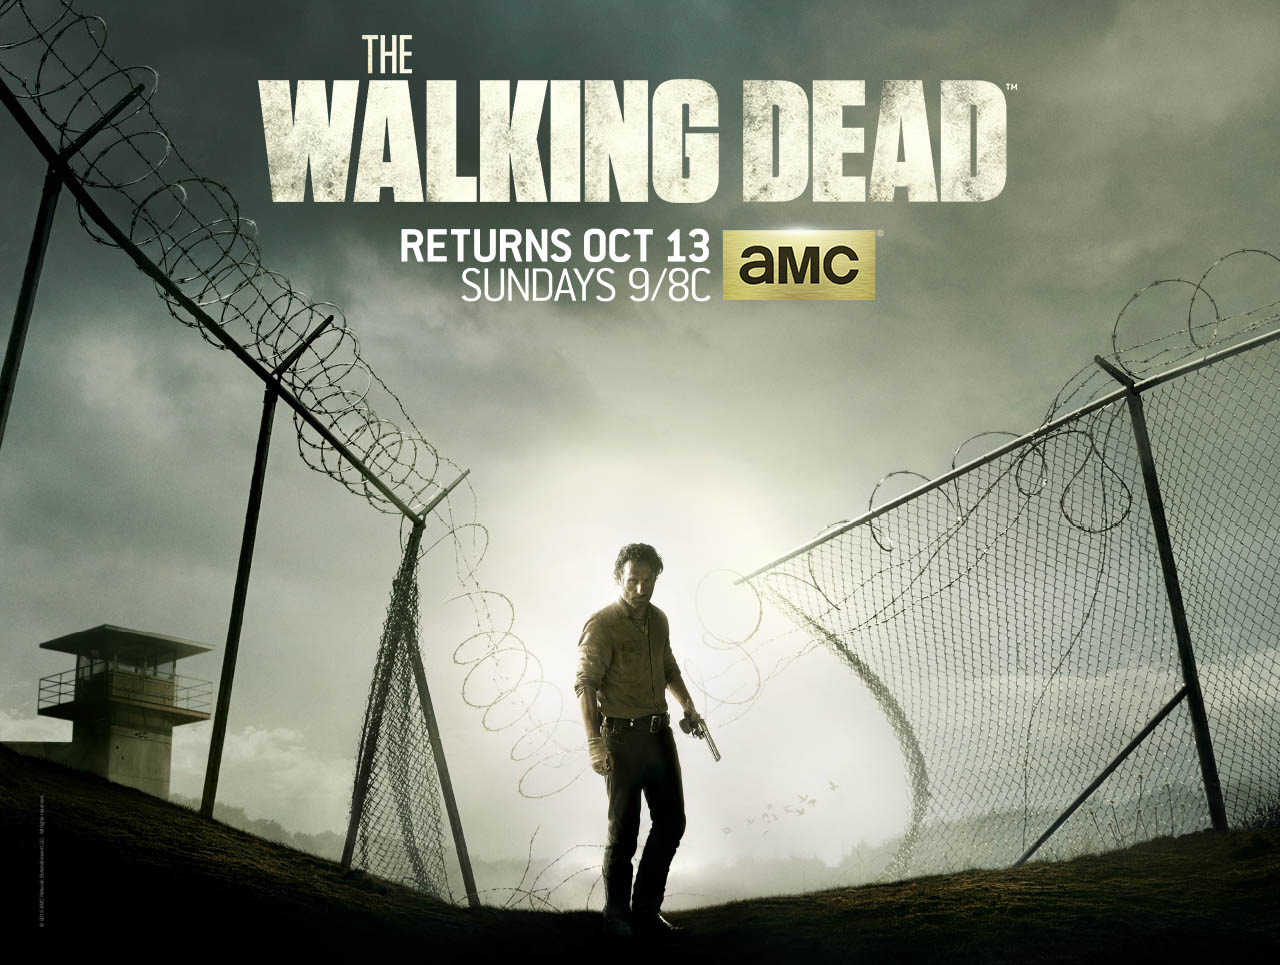 [img]http://images.amcnetworks.com/blogs.amctv.com/wp-content/uploads/2013/09/TWD-S4-Key-Art-1280x965.jpg[/img]